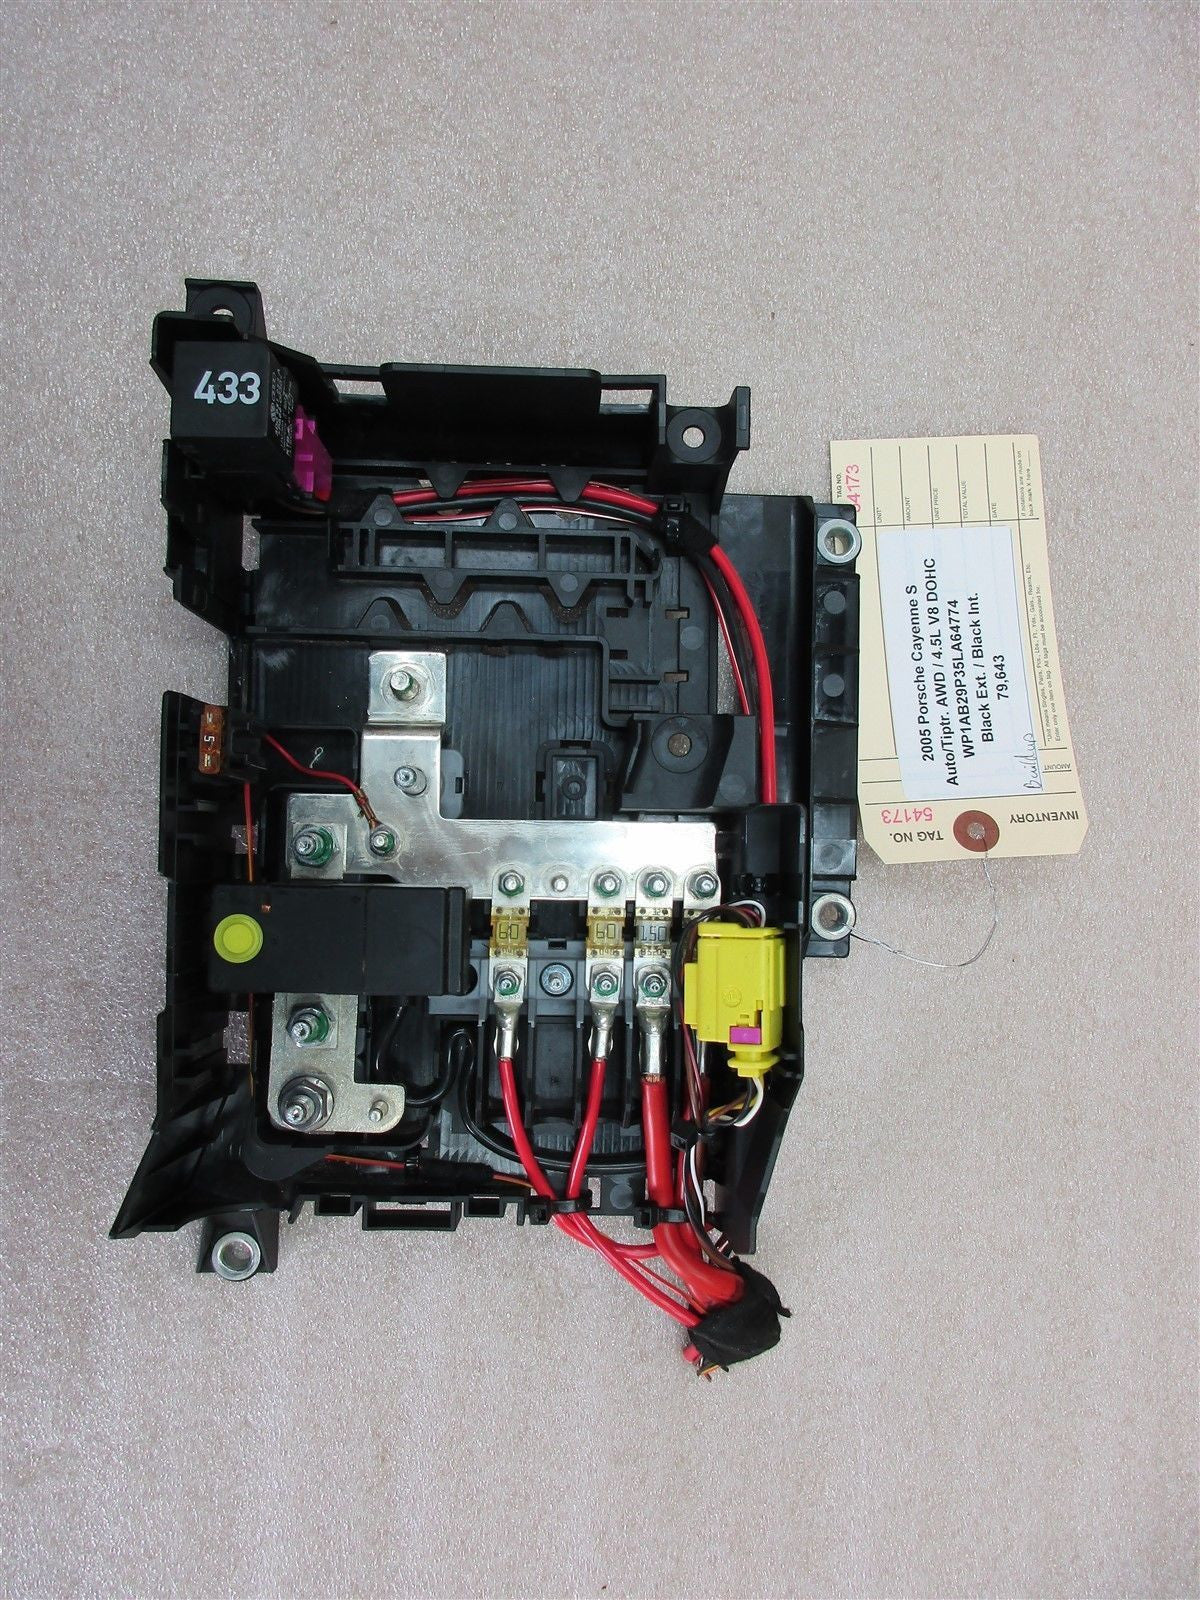 2005 Cayenne Fuse Box Wiring Library 05 S Awd Porsche 955 Relay 3d0951253a 79643